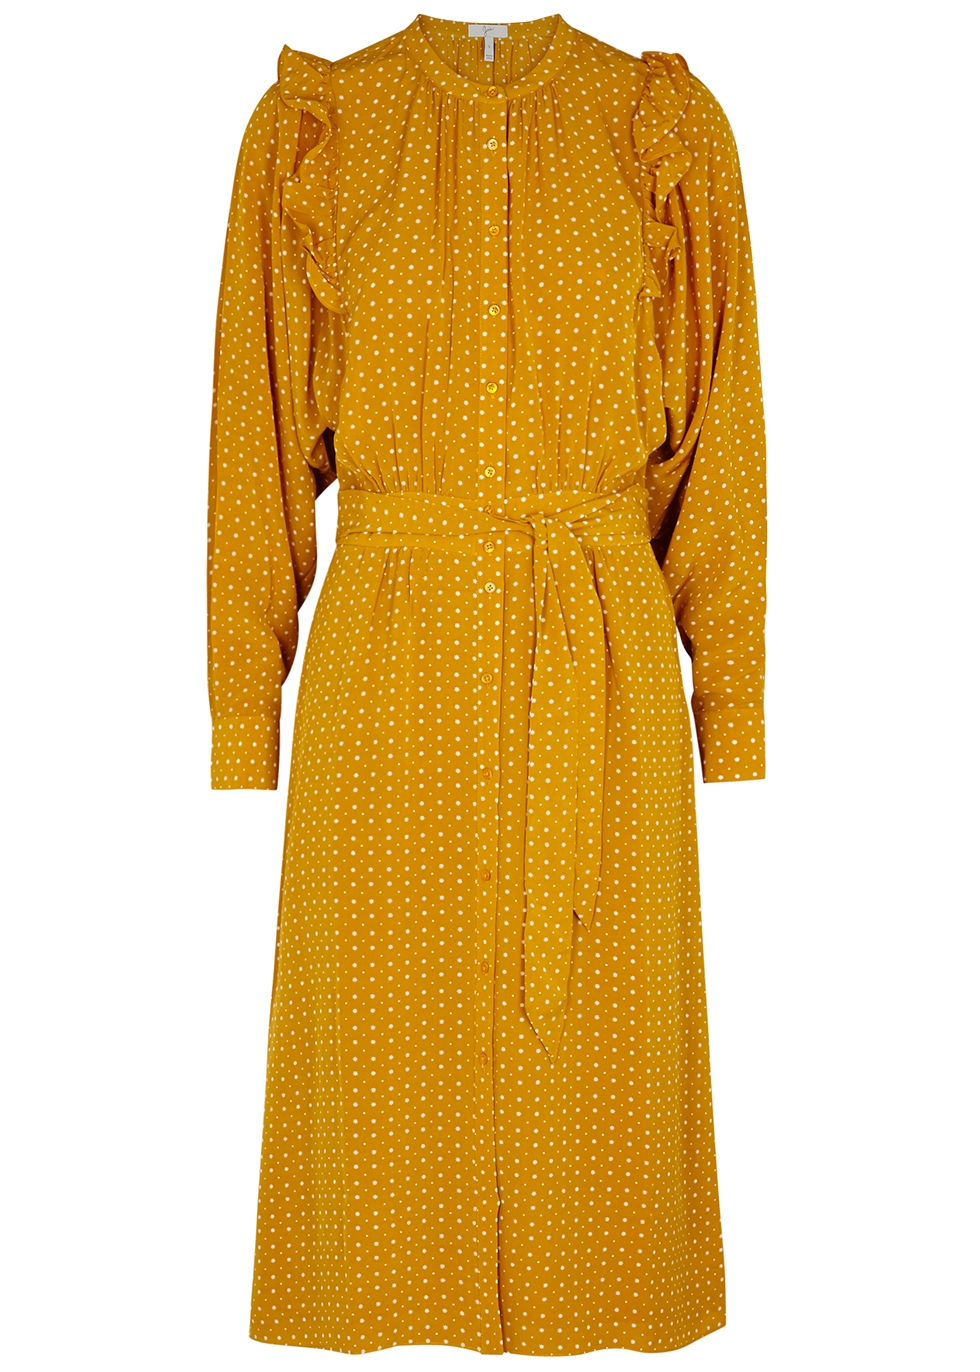 Redson Marigold Printed Dress in Yellow from Joie